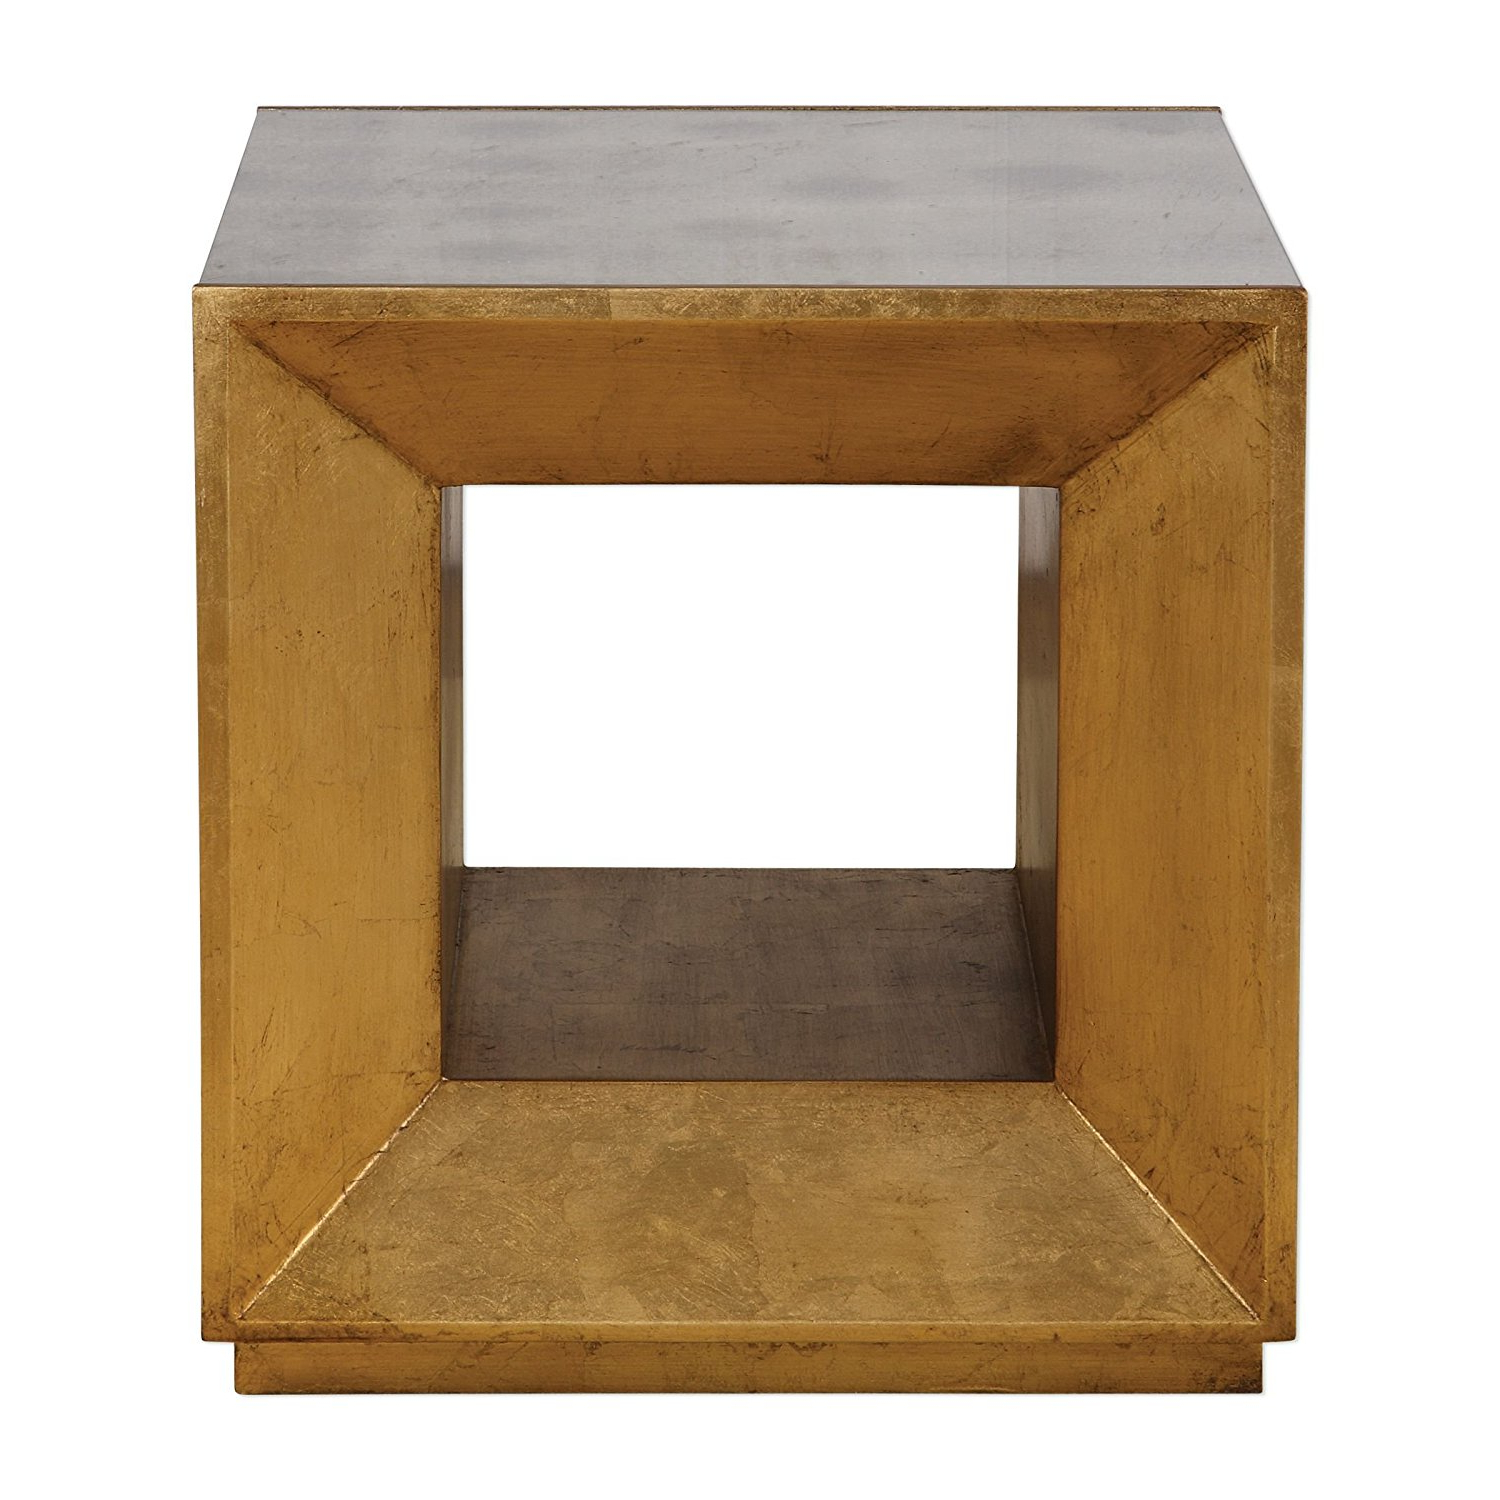 Aged Iron Cube Tables For Recent Cheap Mirrored Cube Side Table, Find Mirrored Cube Side Table Deals (View 1 of 20)